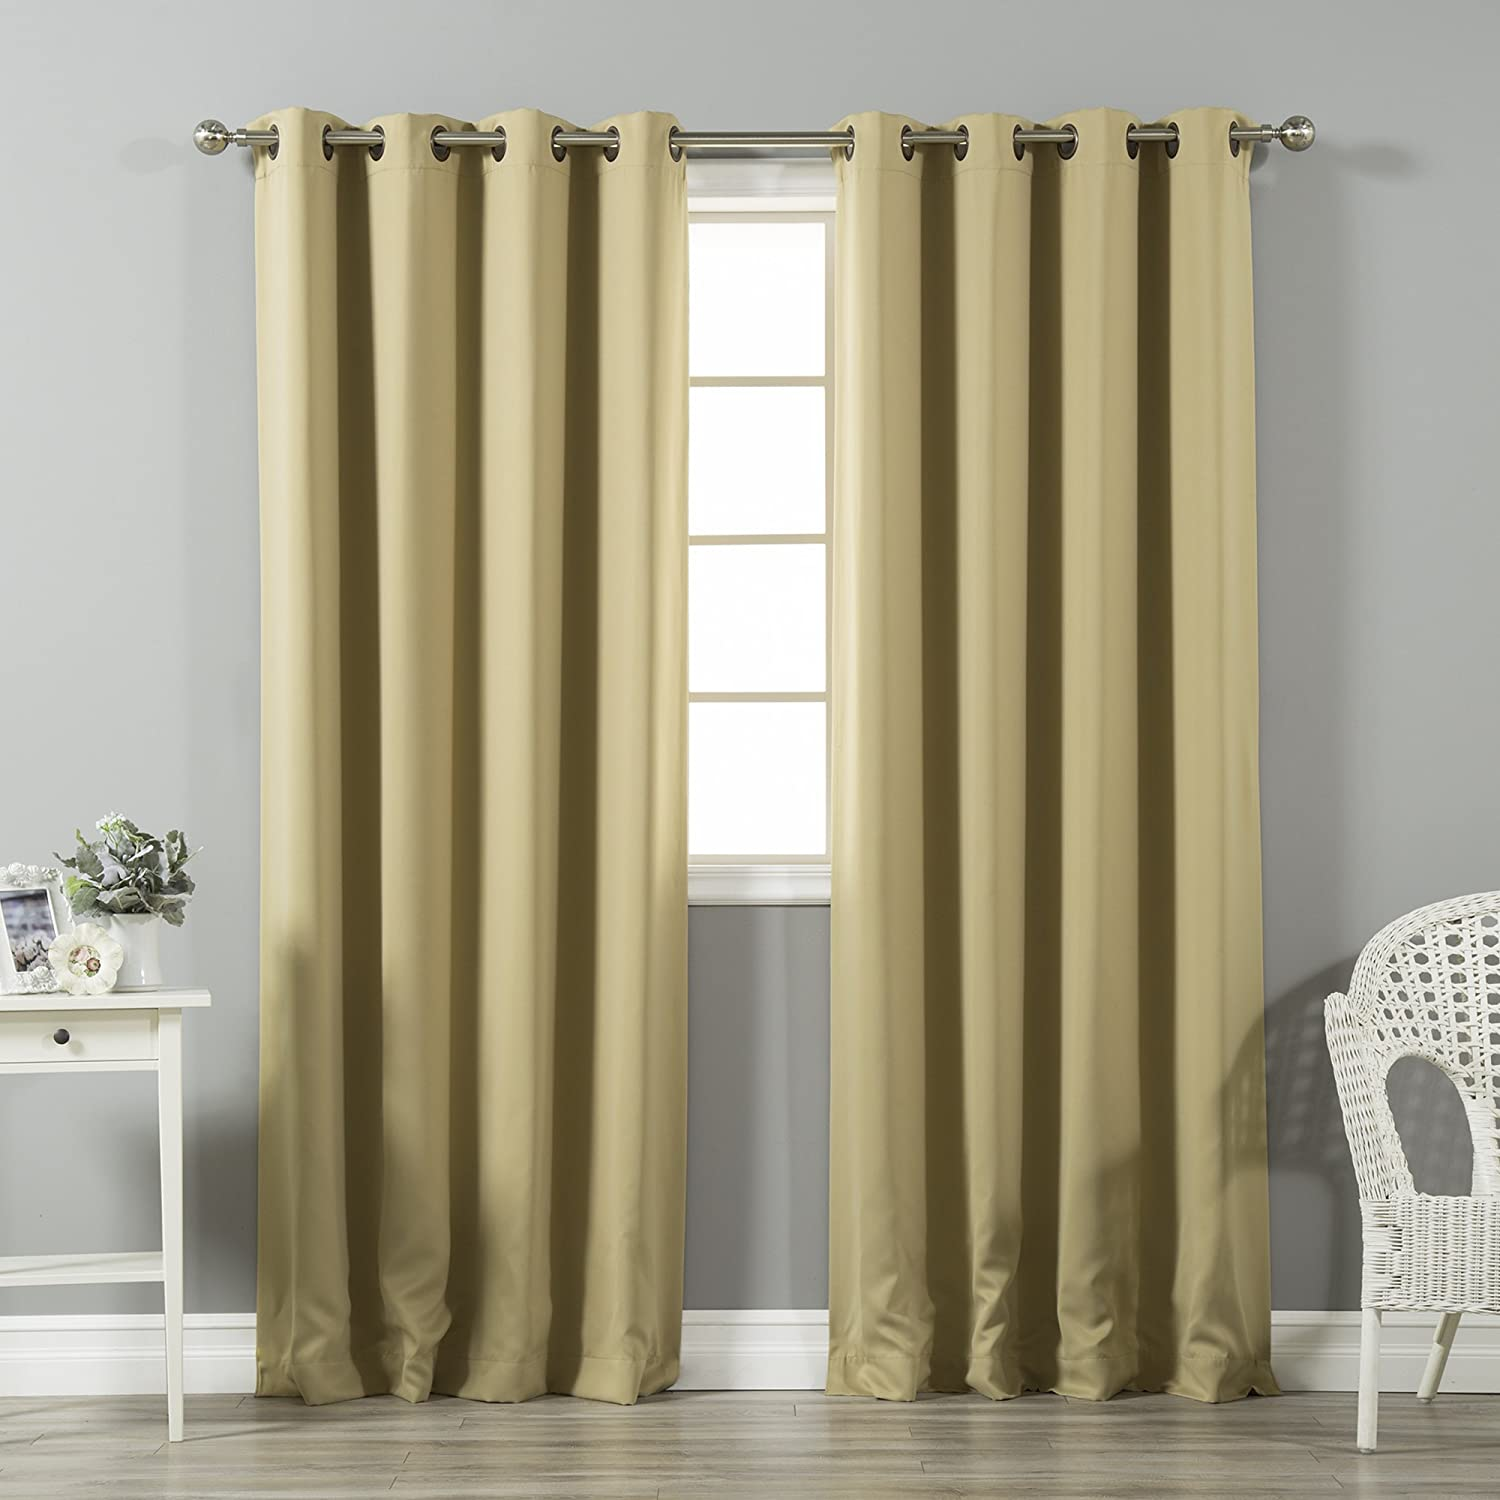 """Best Home Fashion Thermal Insulated Blackout Curtains - Antique Bronze Grommet Top - Wheat - 52""""W x 108""""L - (Set of 2 Panels) blackout curtains Blackout curtains – 7 best blackout curtains according to reviews 81bjEAqA68L"""